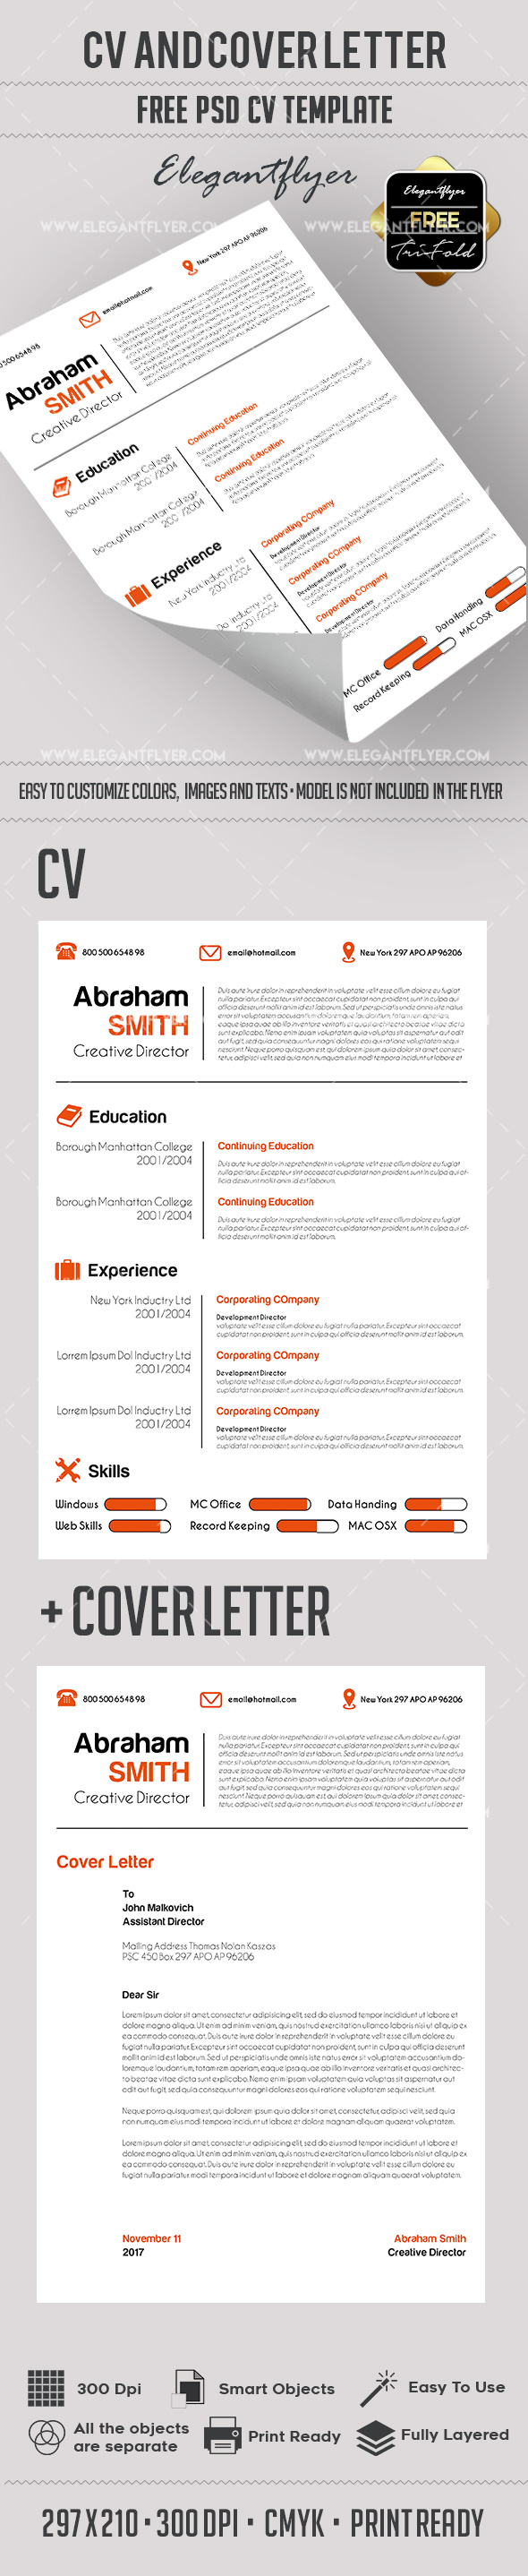 Free PSD CV and Cover Letter Template